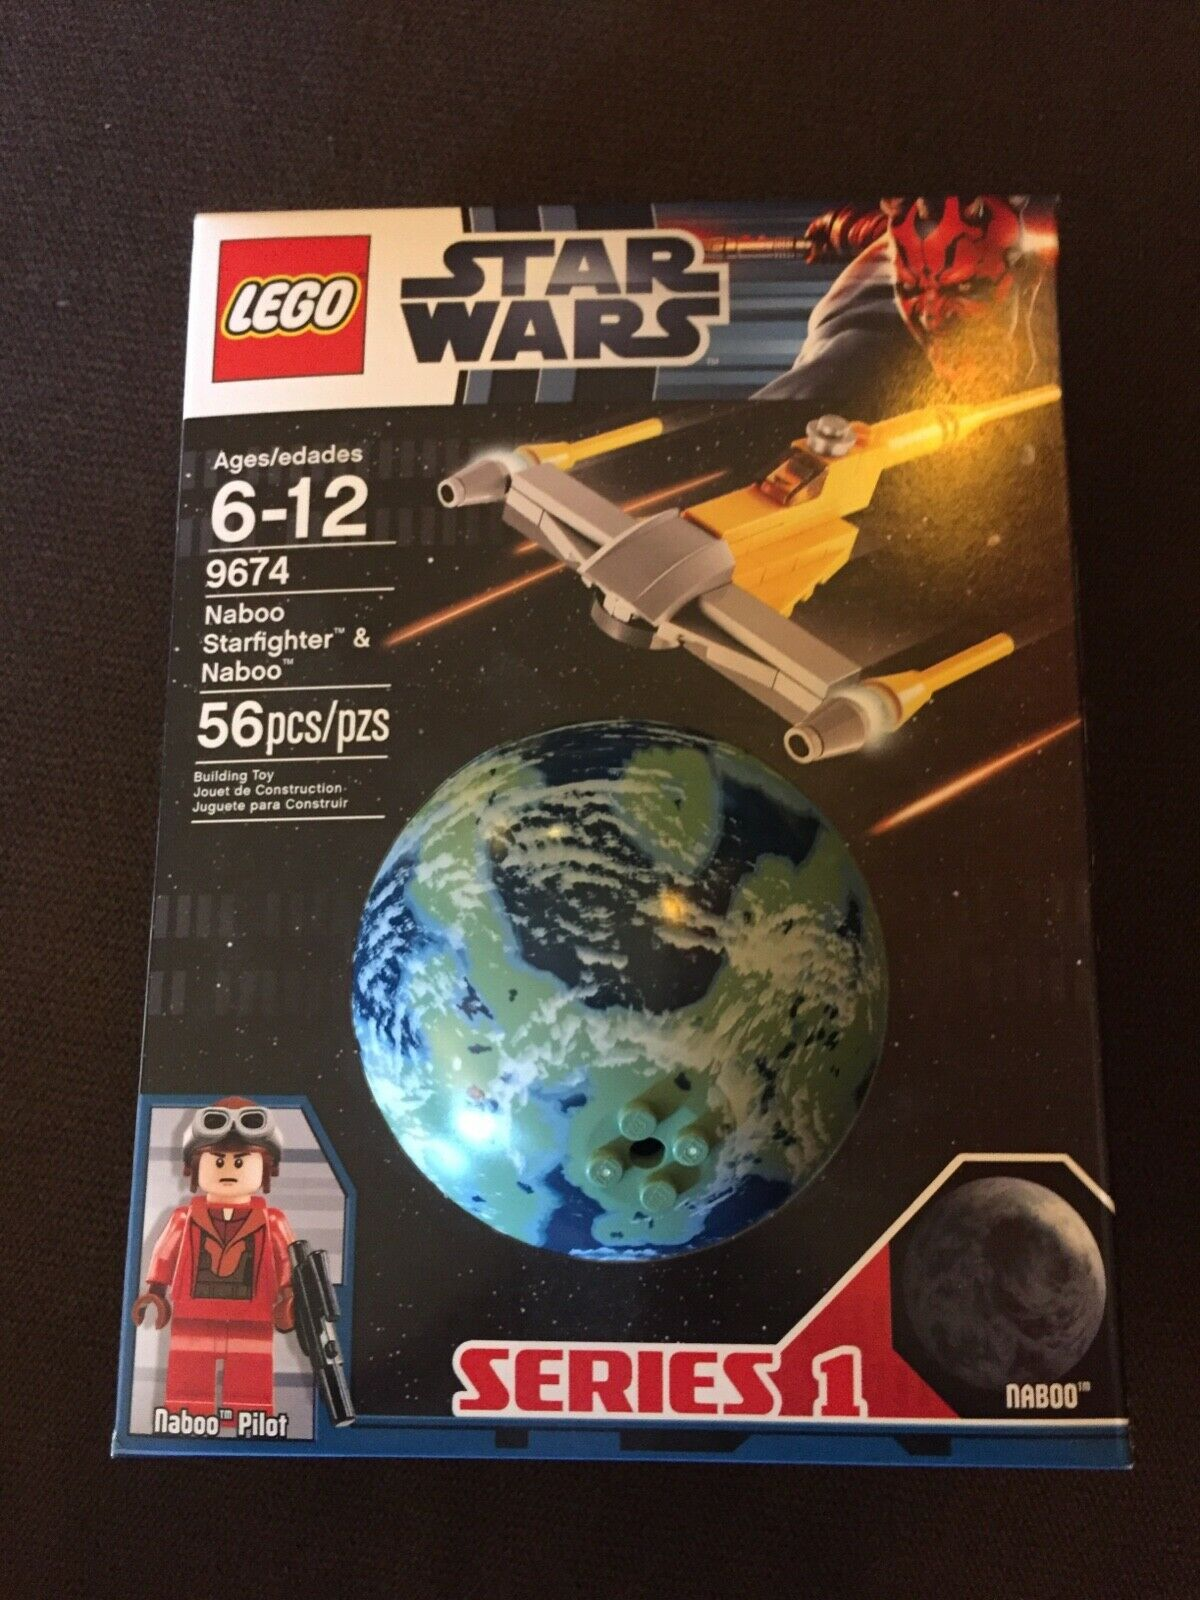 LEGO Star Wars 9674. Series 1. Brand new. Factory sealed. Retired LEGO